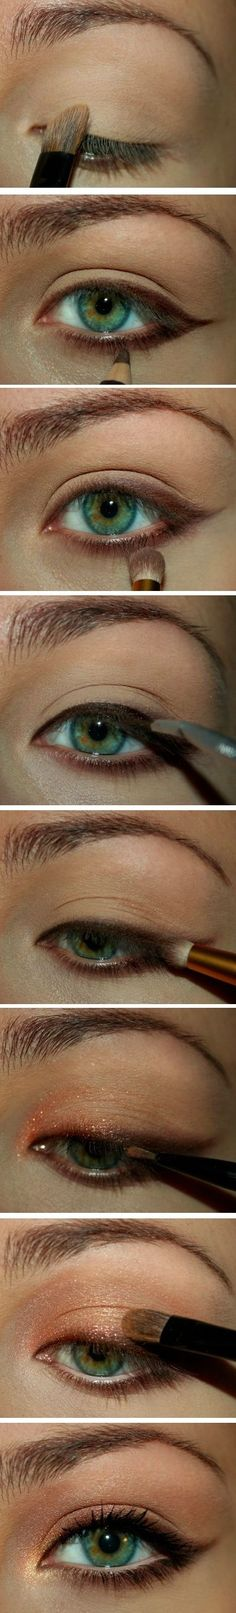 Awesome makeup for green or blue eyes. Unfortunetly i have brown eyes